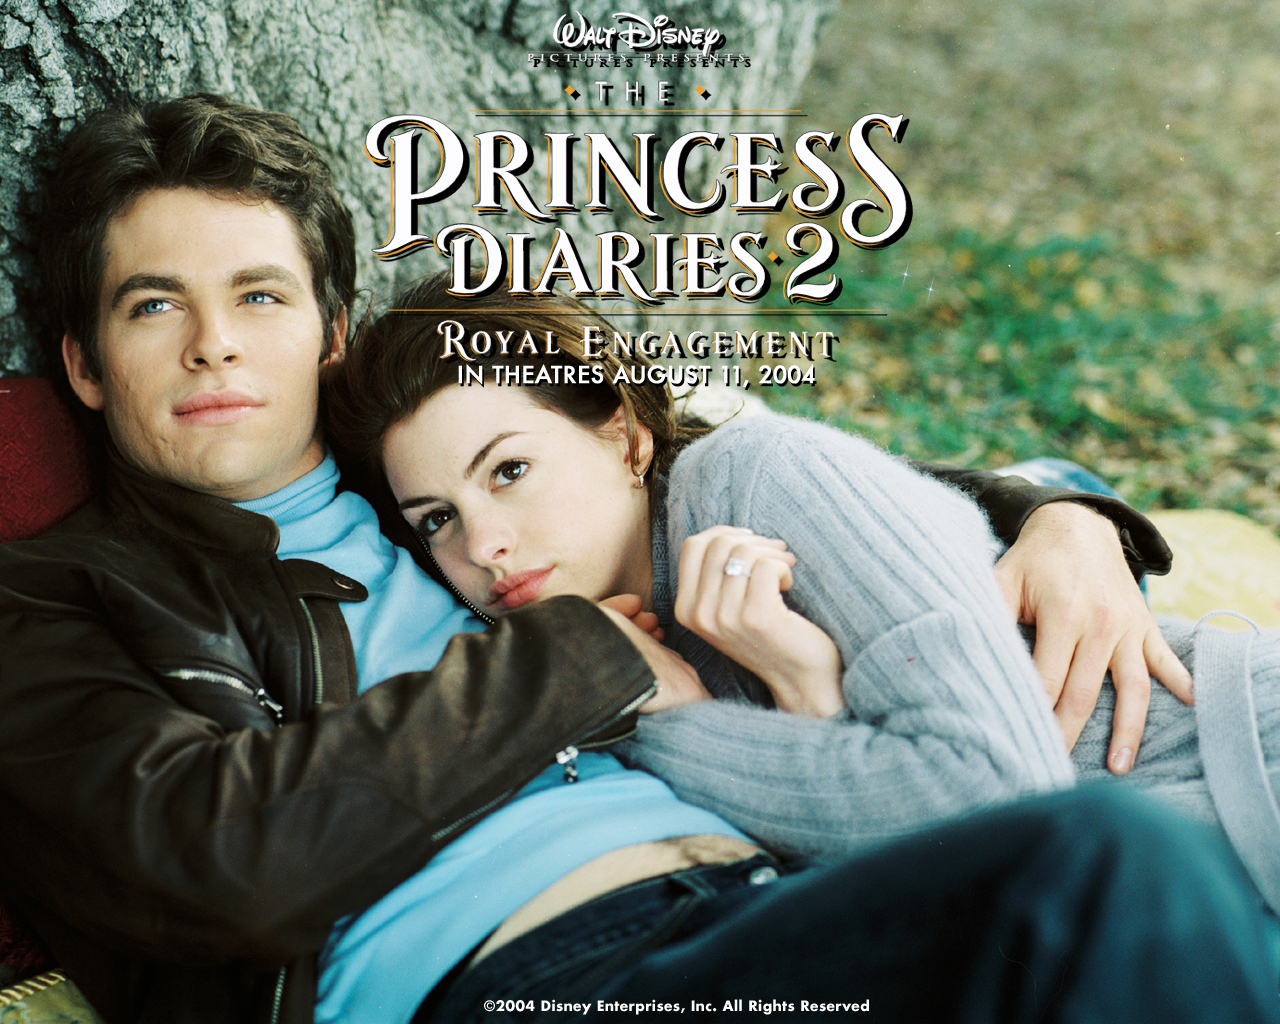 Anne Hathaway in The Princess Diaries 2 Royal Engagement Wallpaper 1280 960